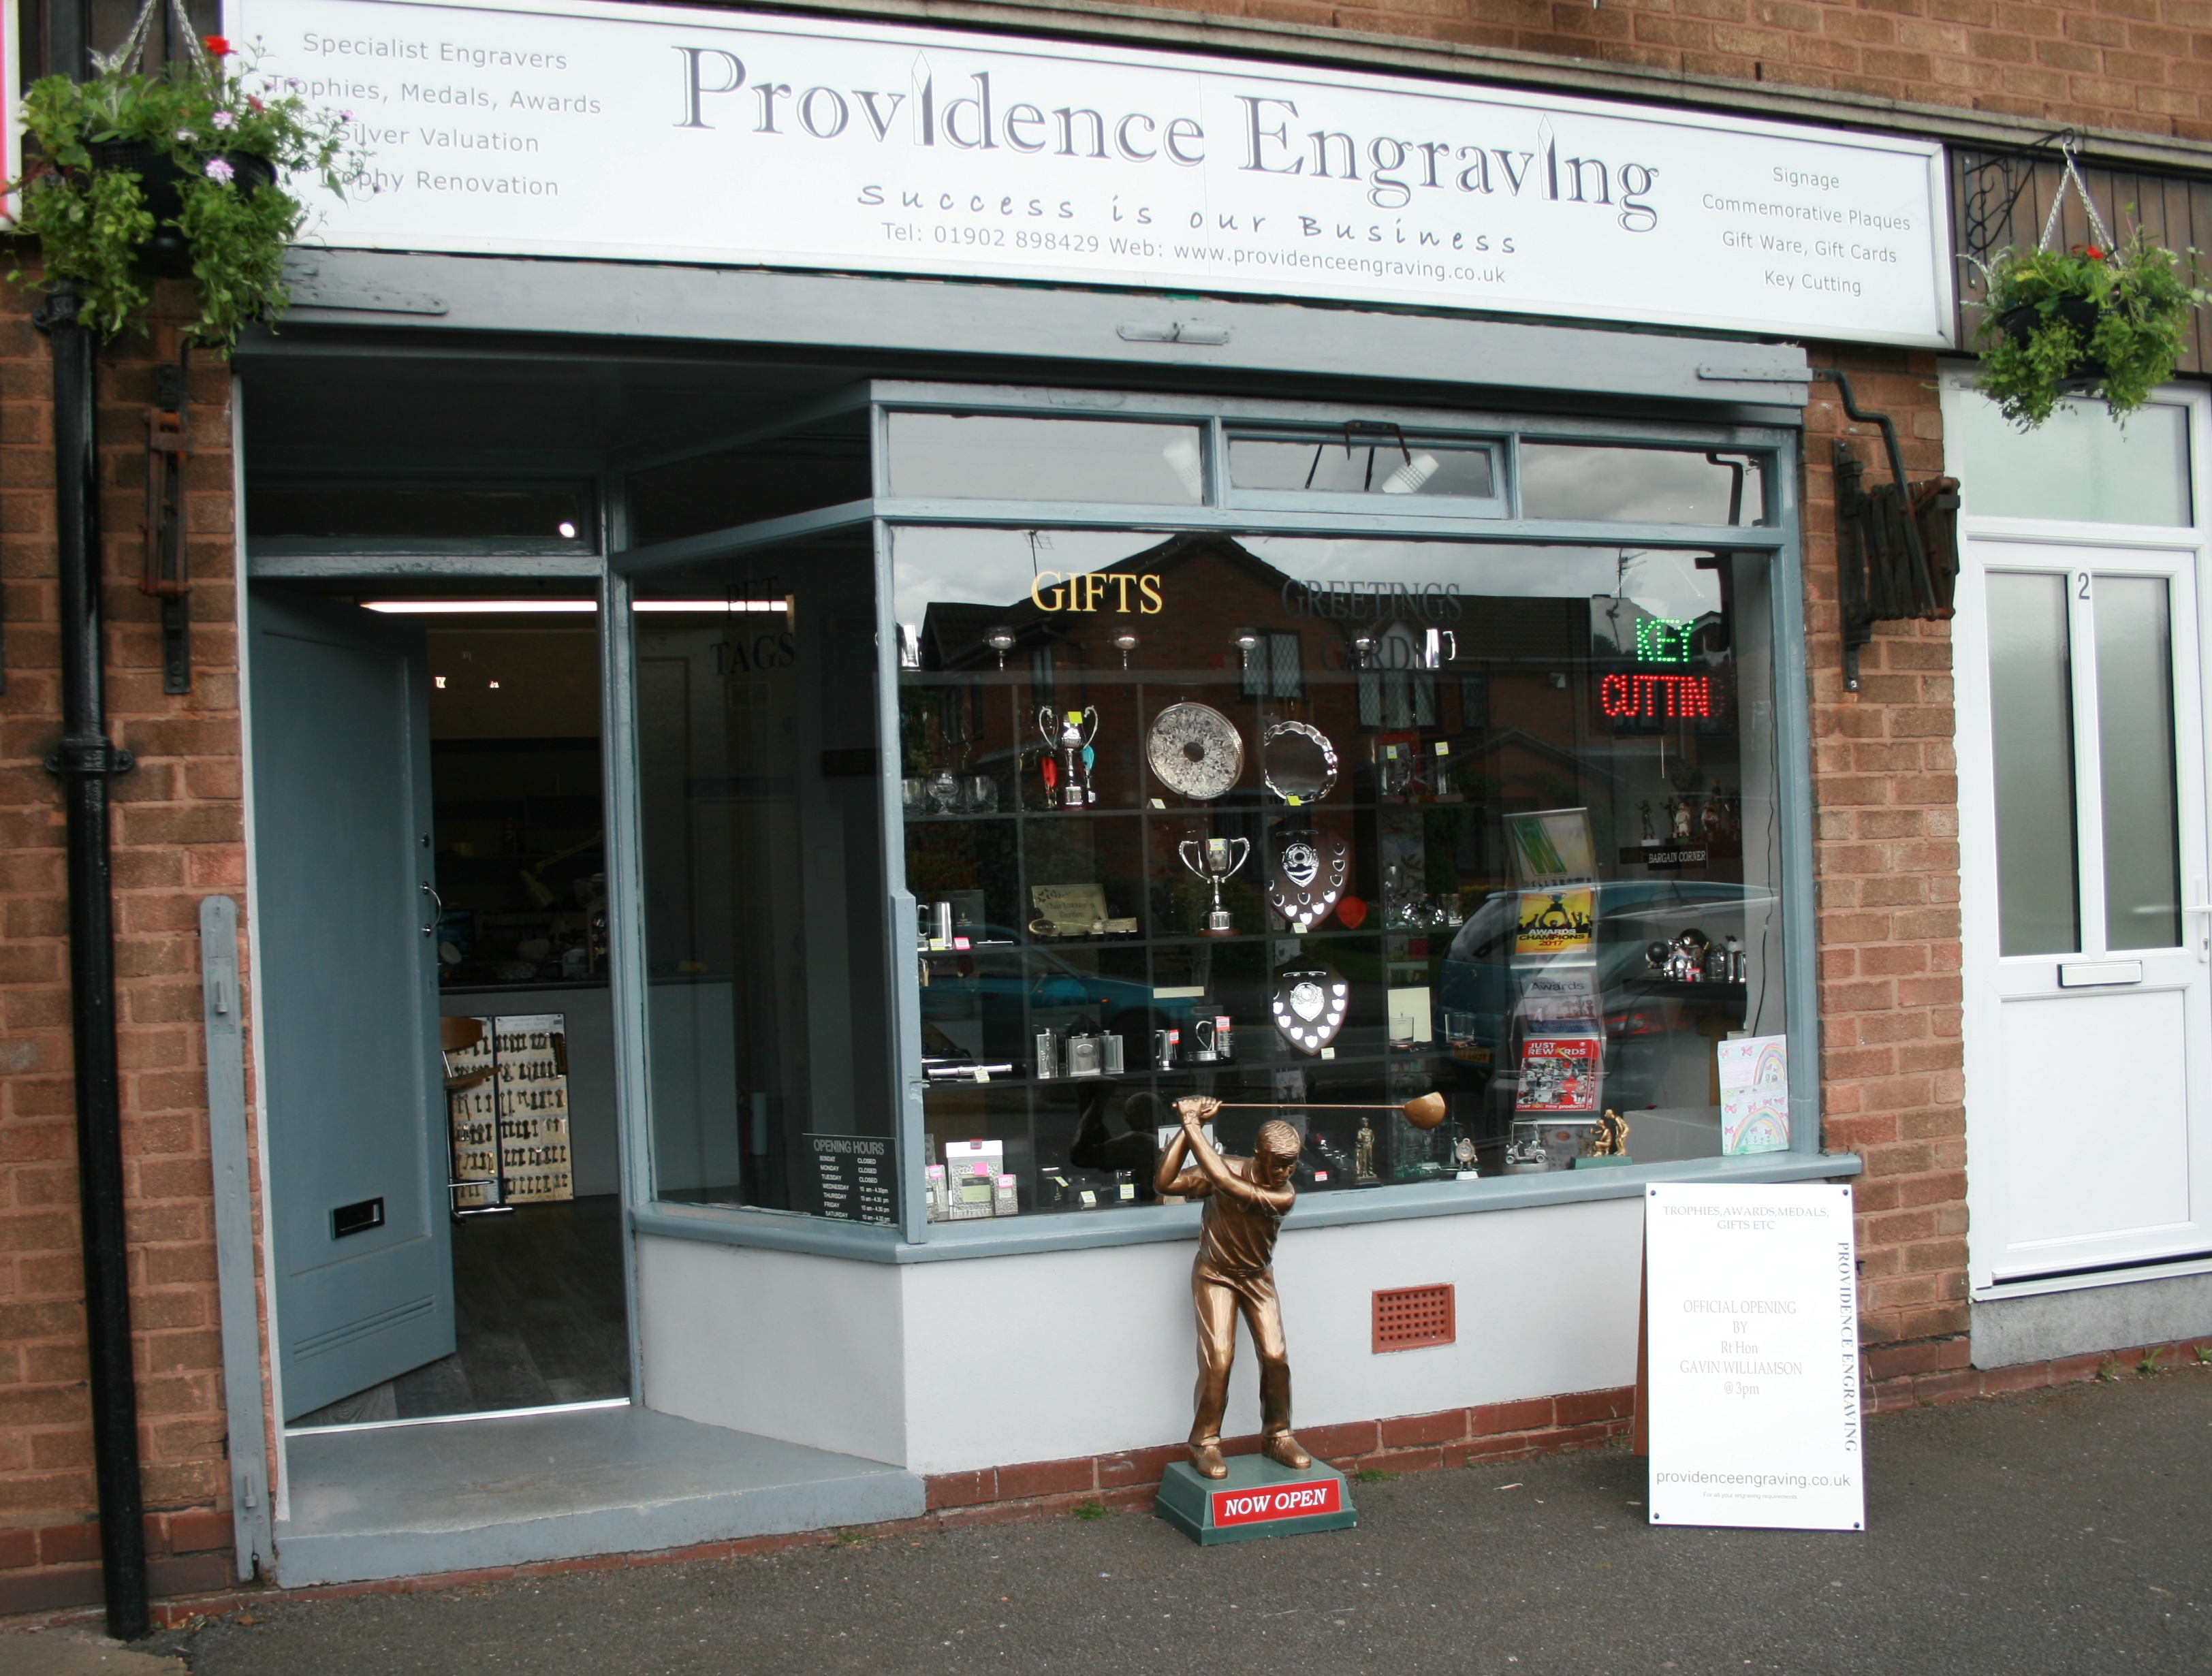 Providence Engraving - Wombourne, Staffordshire WV5 0AN - 01902 898429 | ShowMeLocal.com